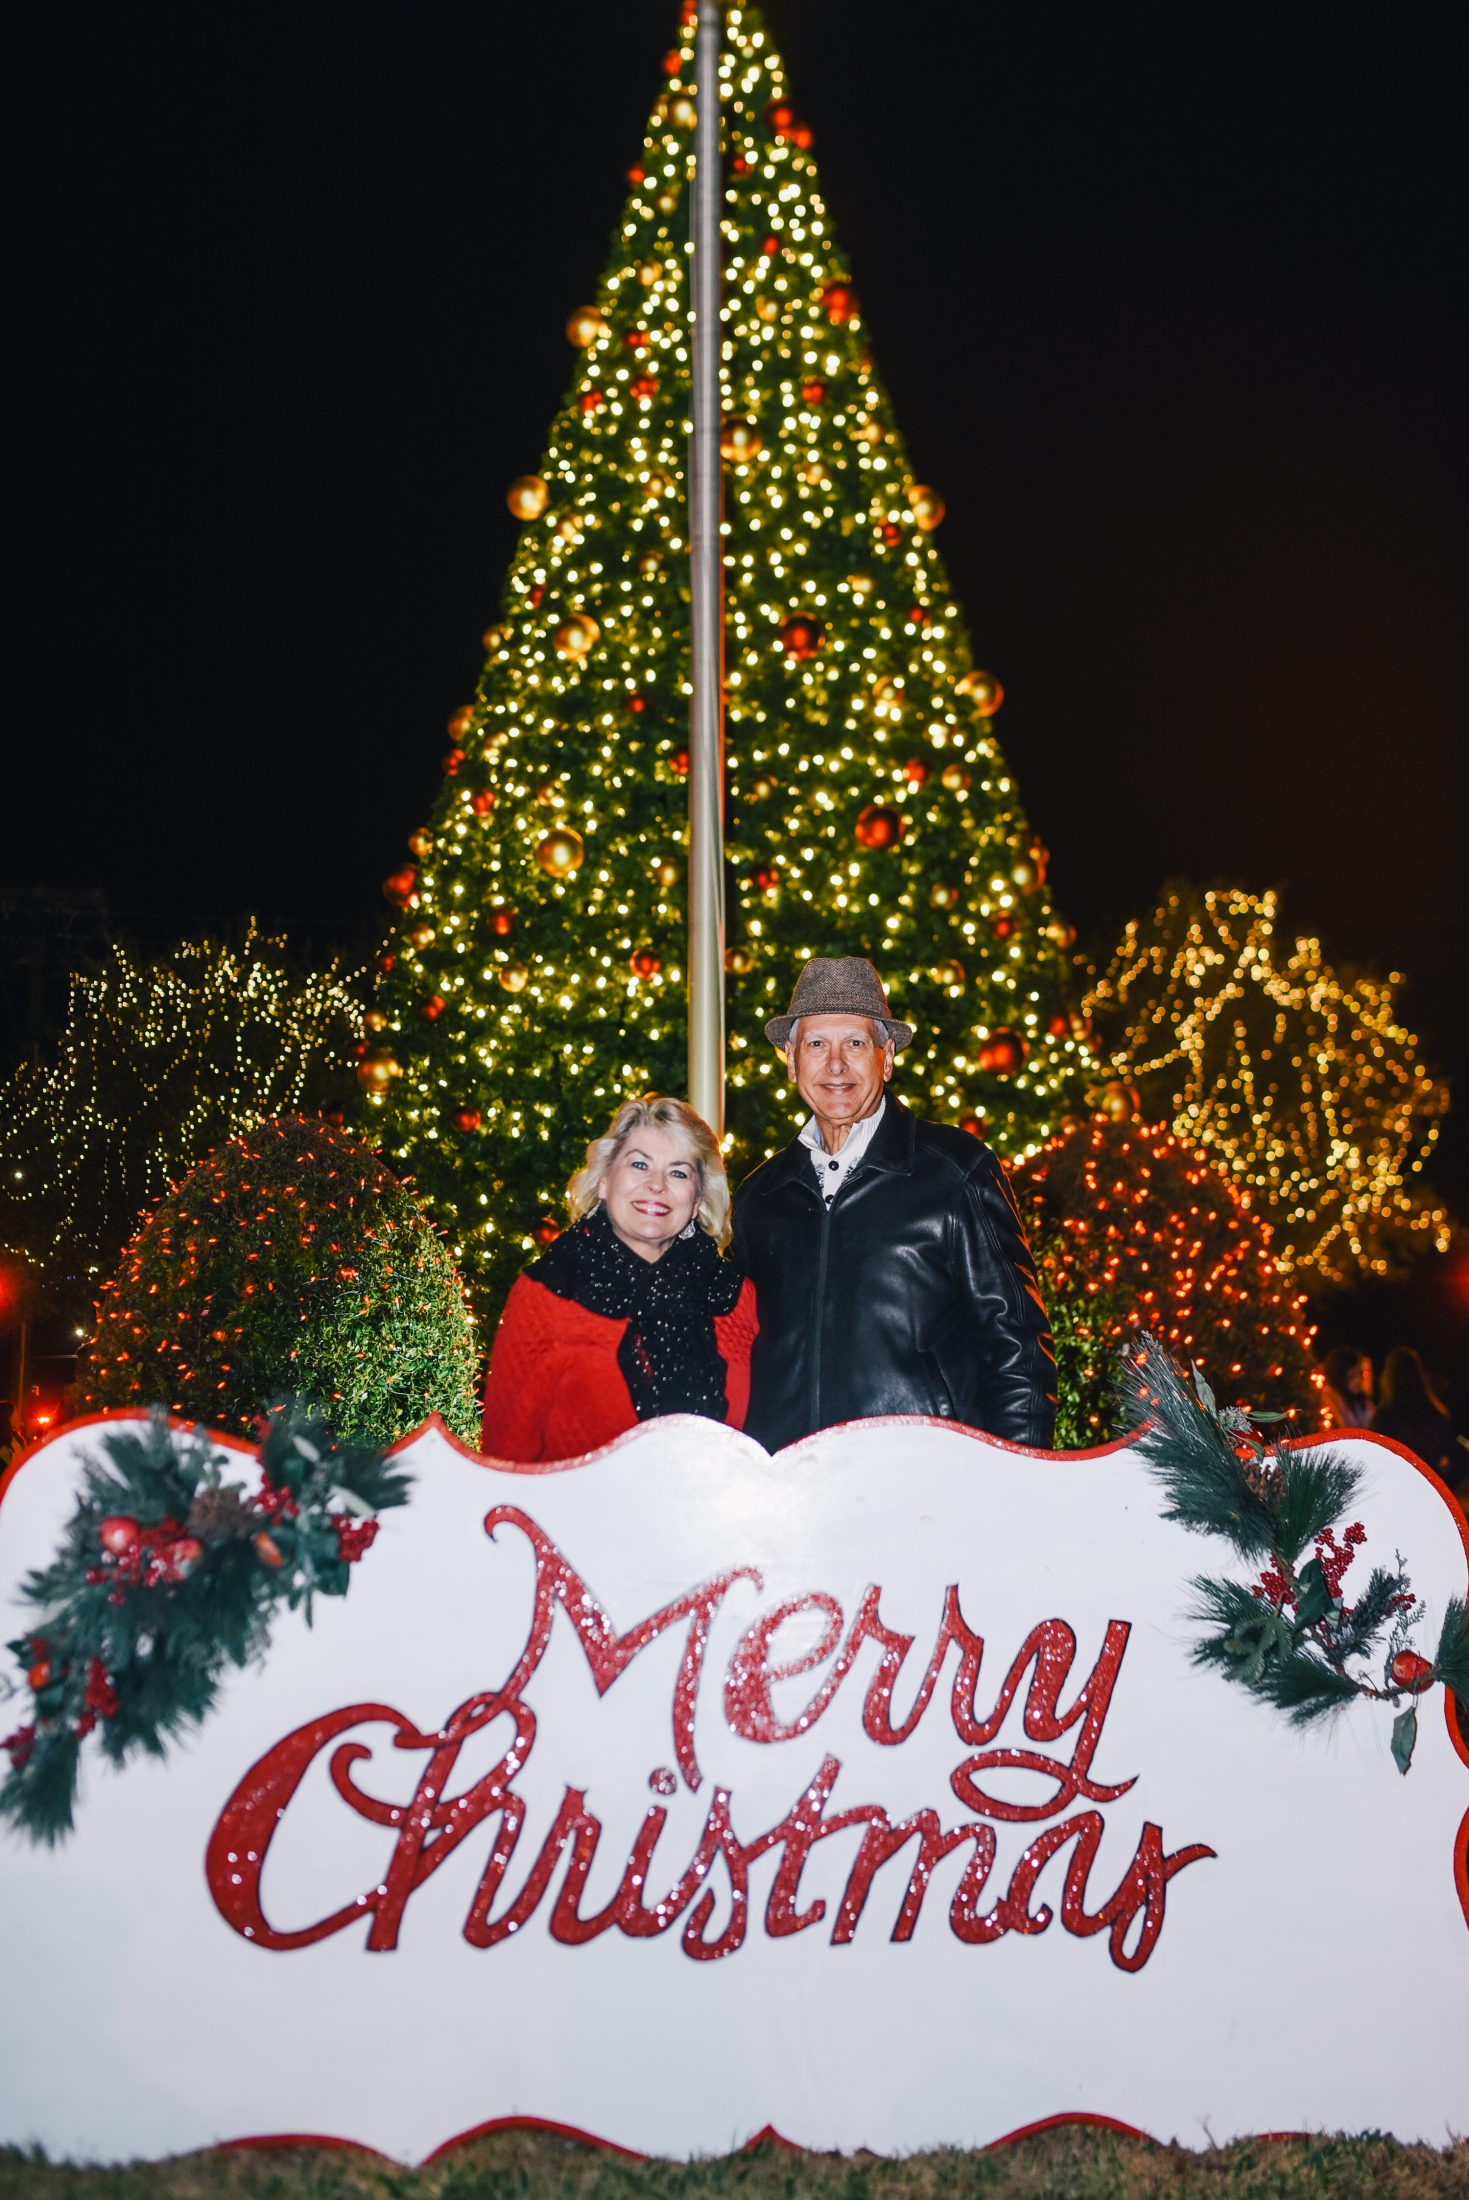 2020 Duncanville Christmas Eve Service Photos: 2019 Duncanville Christmas Parade & Tree Lighting   City